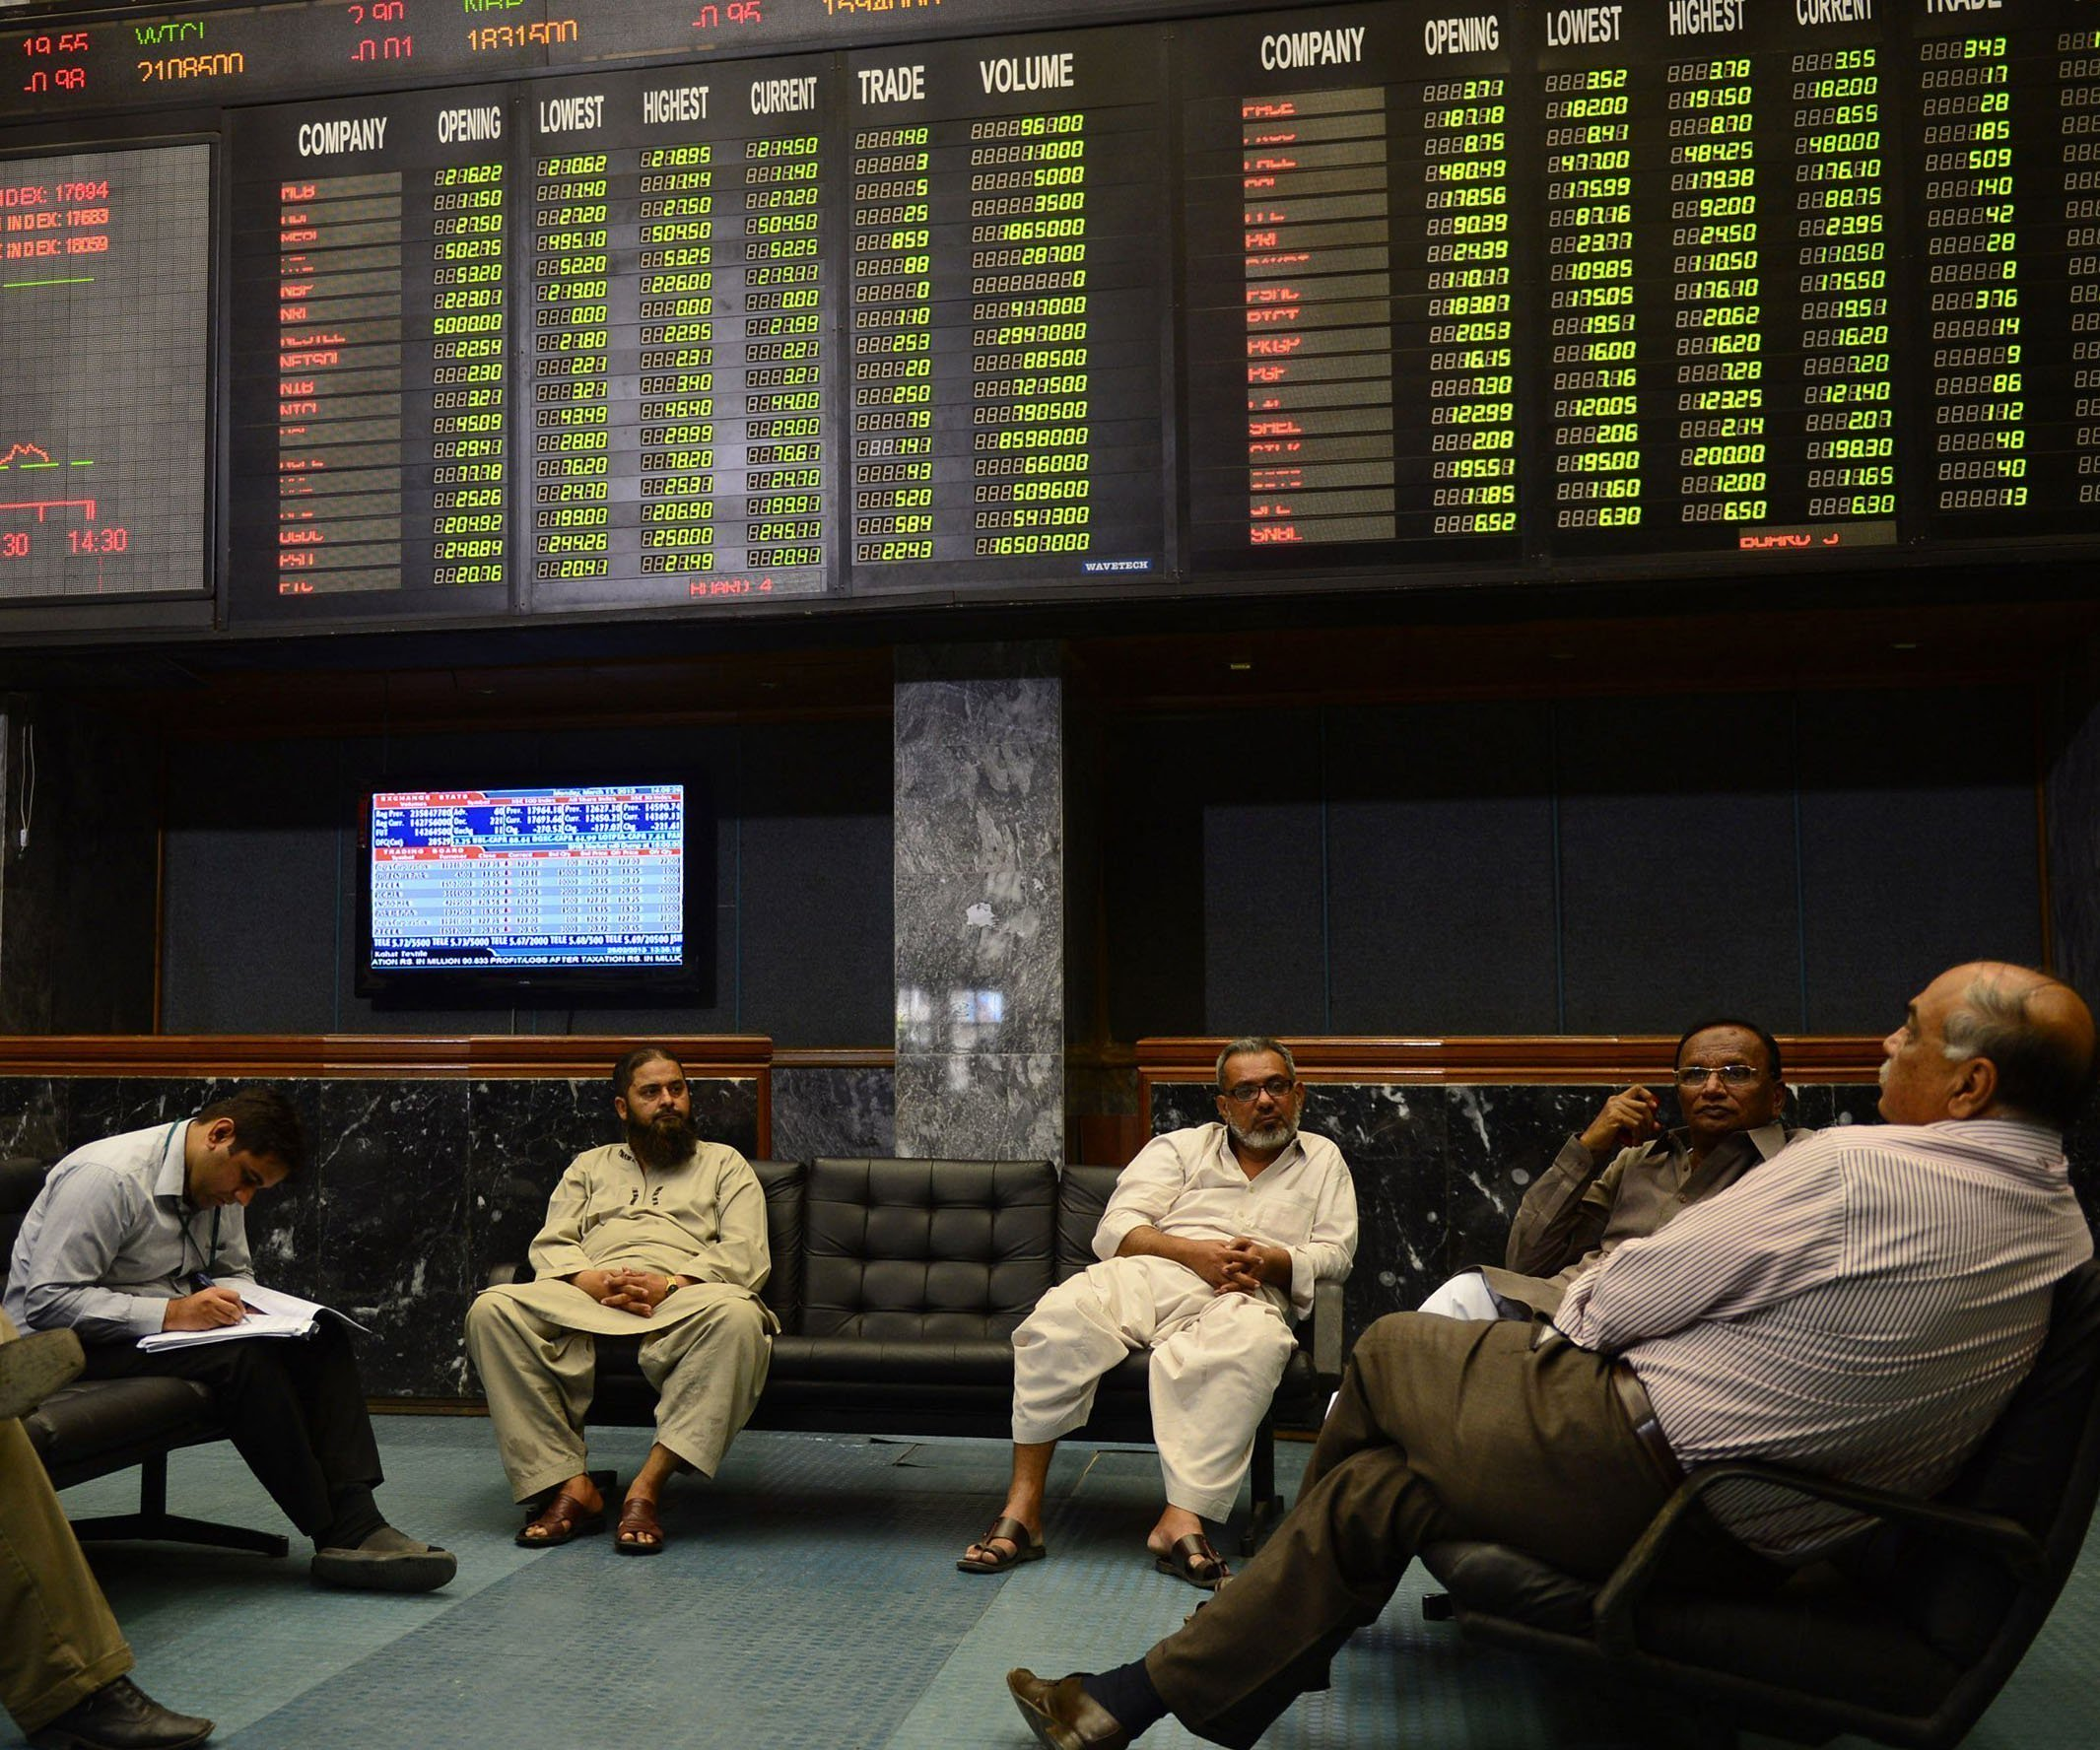 kse 100 index rises 111 86 points to settle at 33 804 90 photo afp